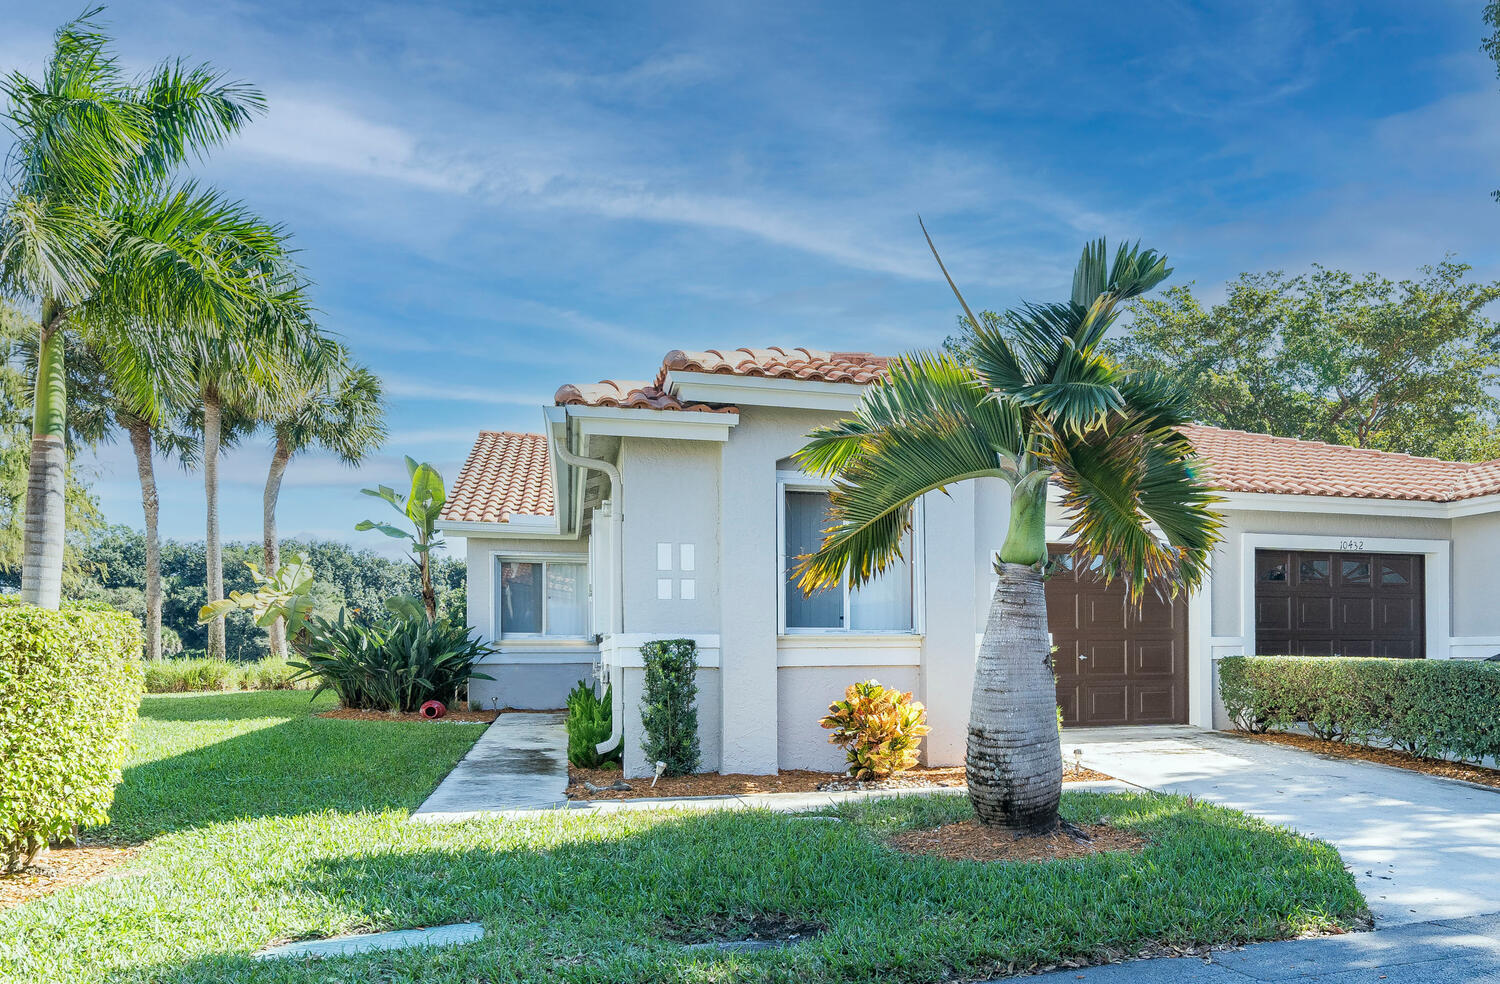 Home for sale in Mission Bay Reflections Boca Raton Florida